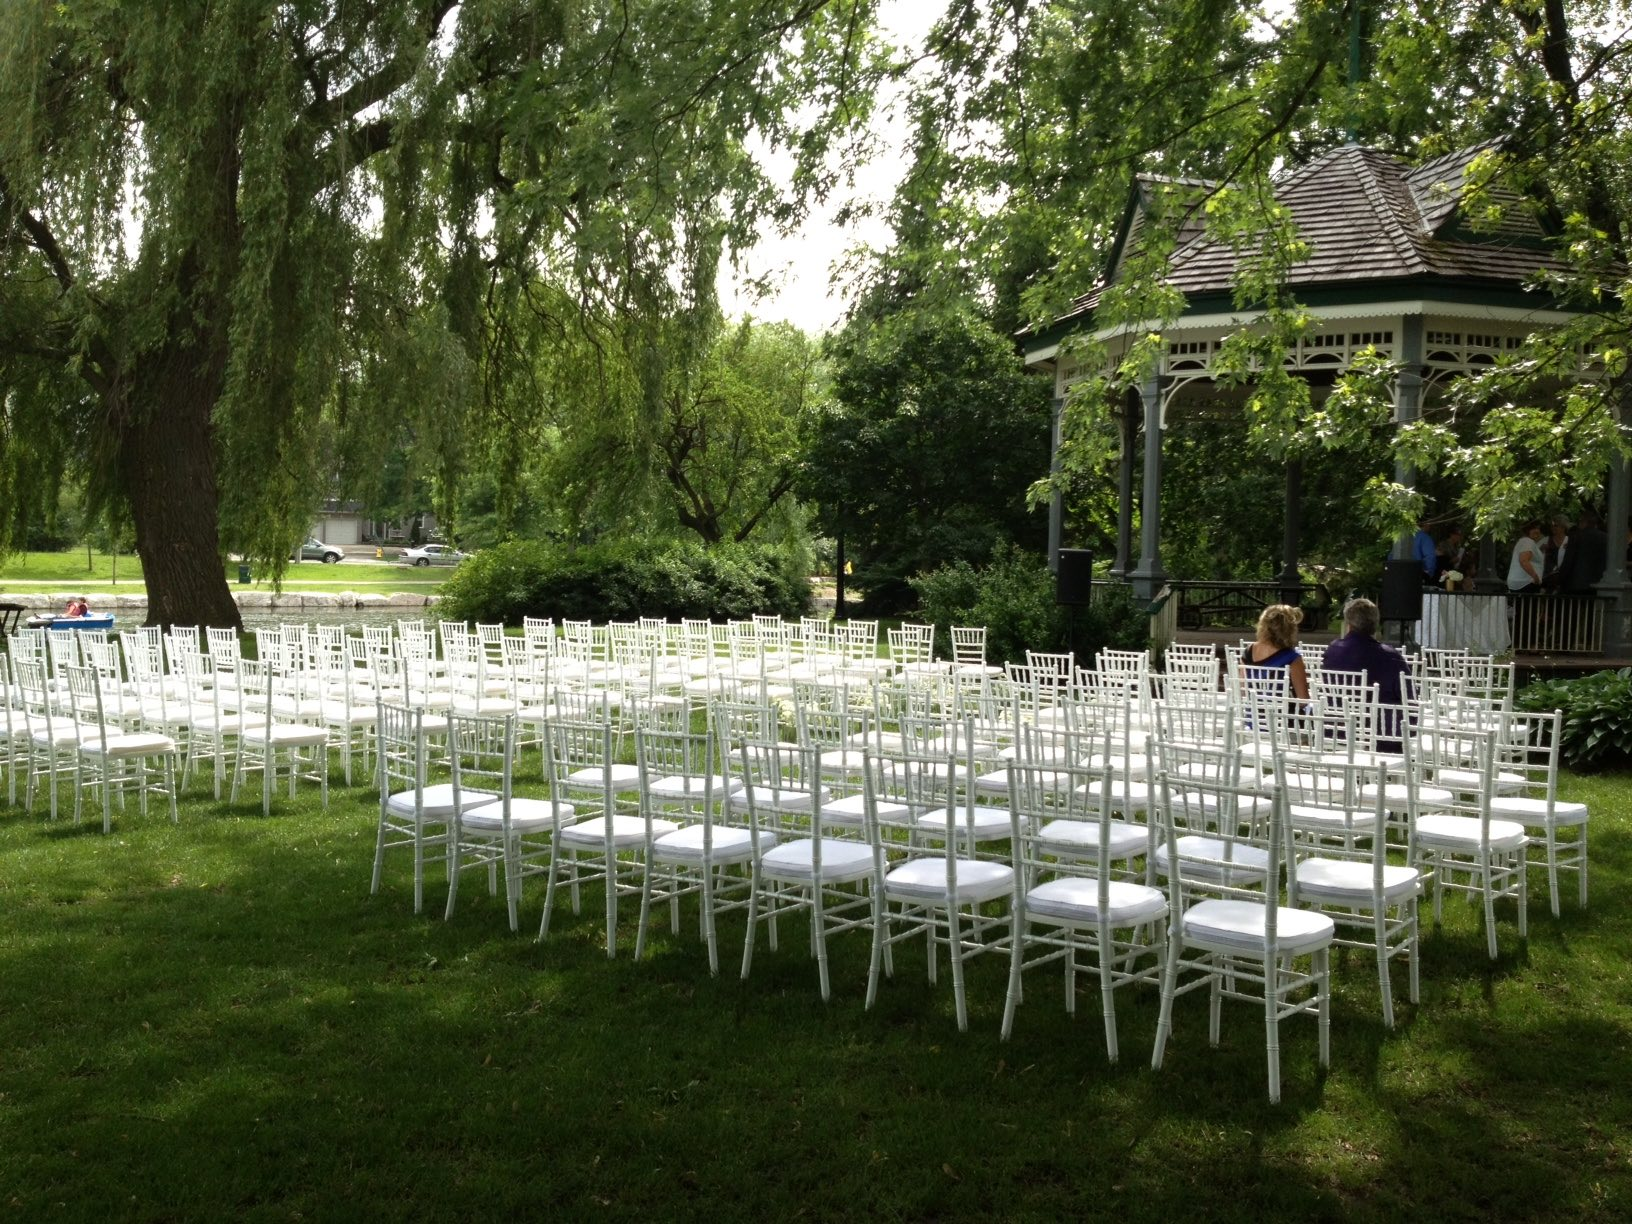 victoria park kitchener outdoor wedding ceremony pavillion park wedding dream decor